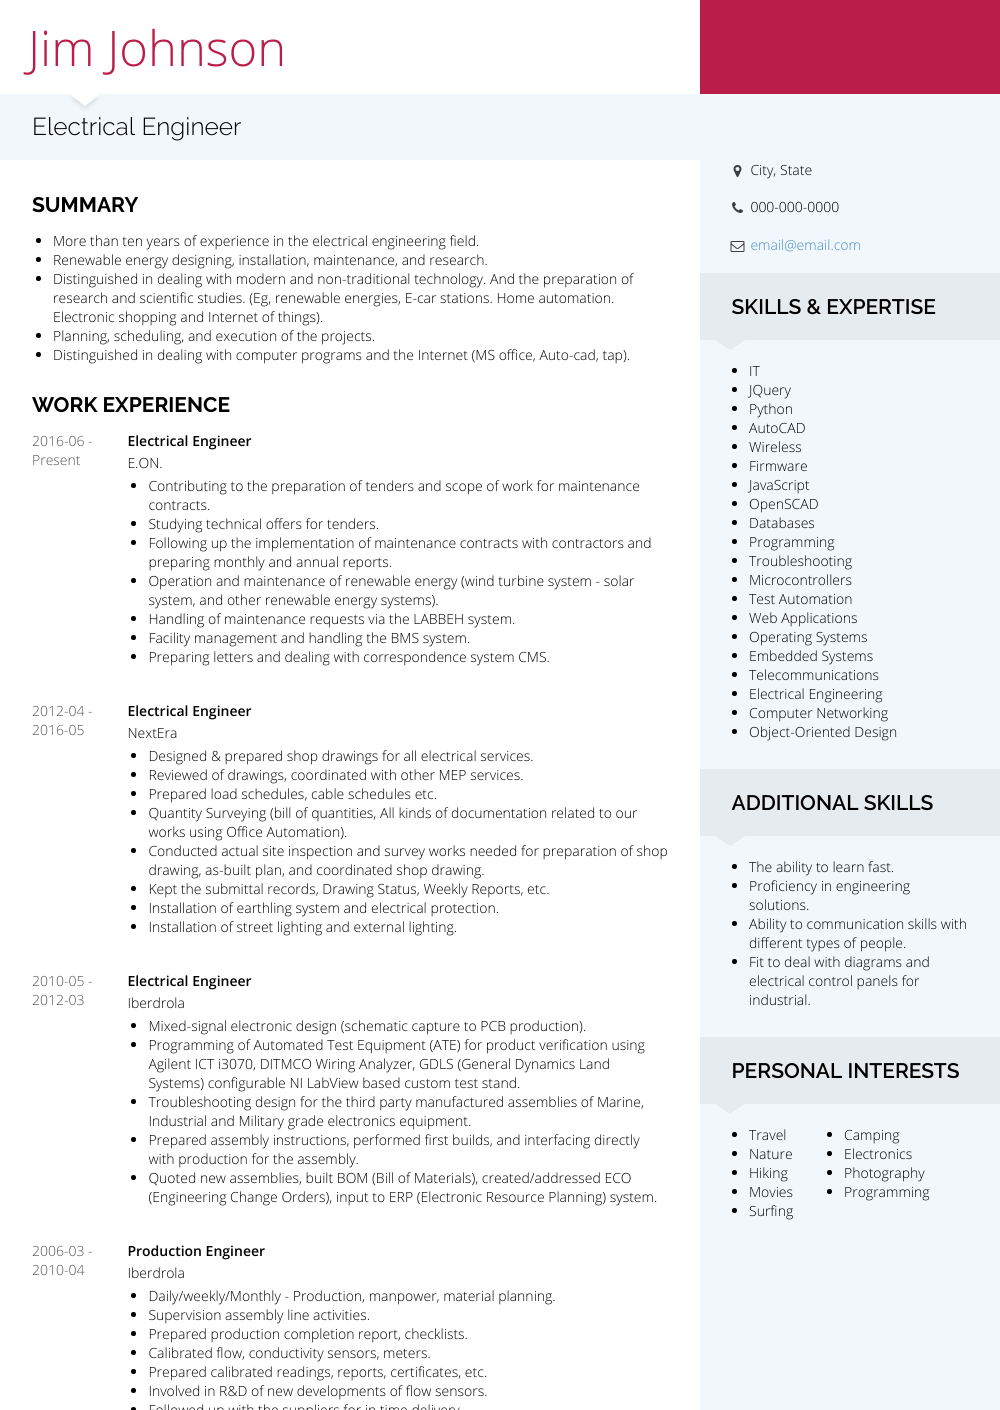 Electrical Engineer Resume Sample and Template